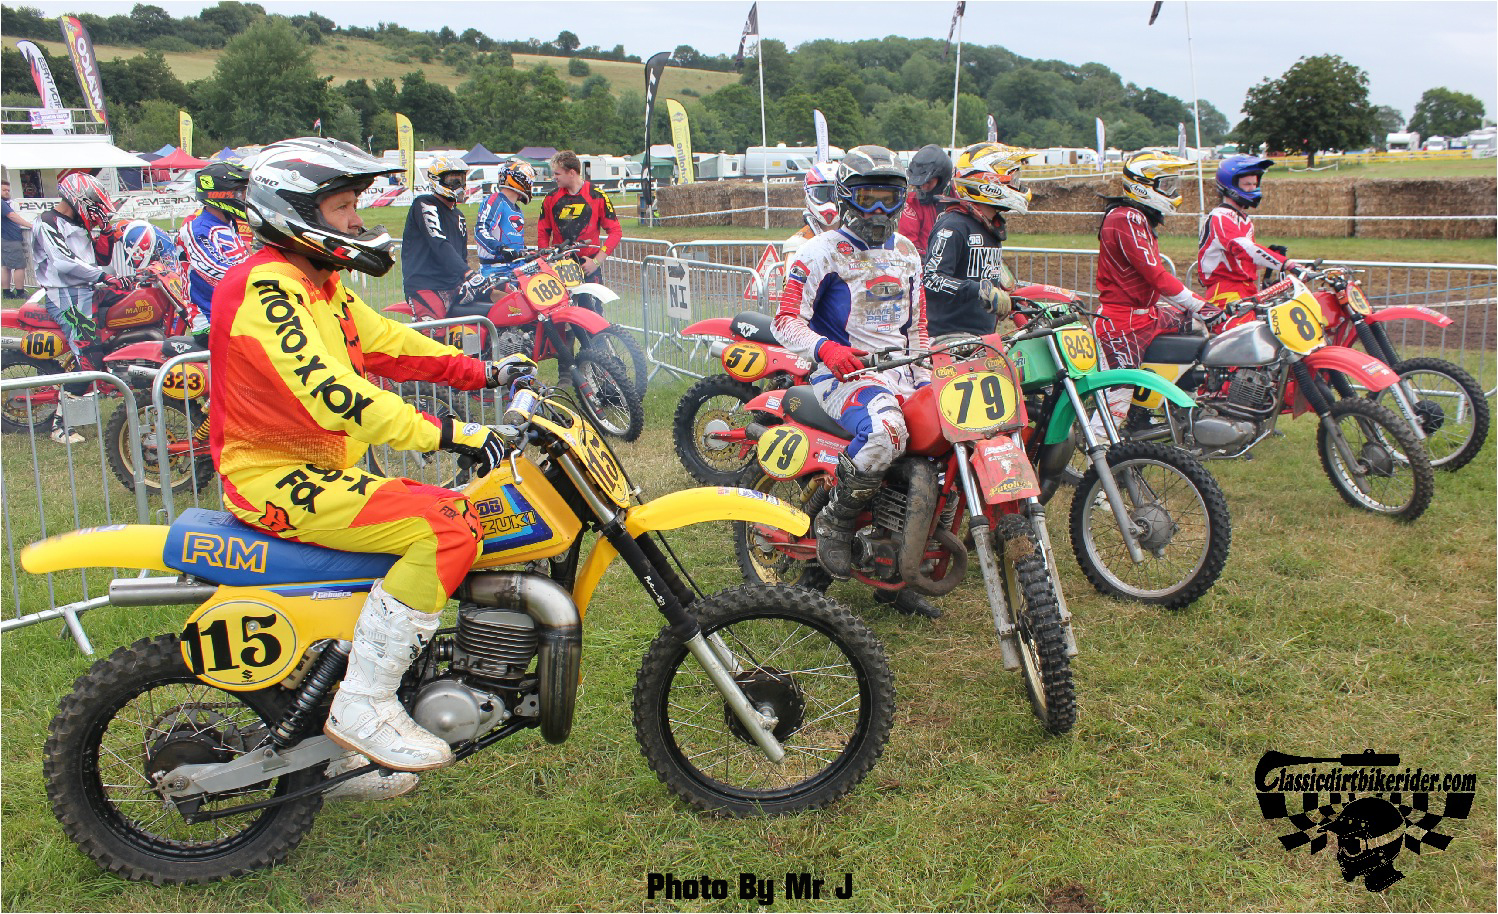 king of the castle 2015 photos Farleigh Castle twinshock motocross classicdirtbikerider.com 12